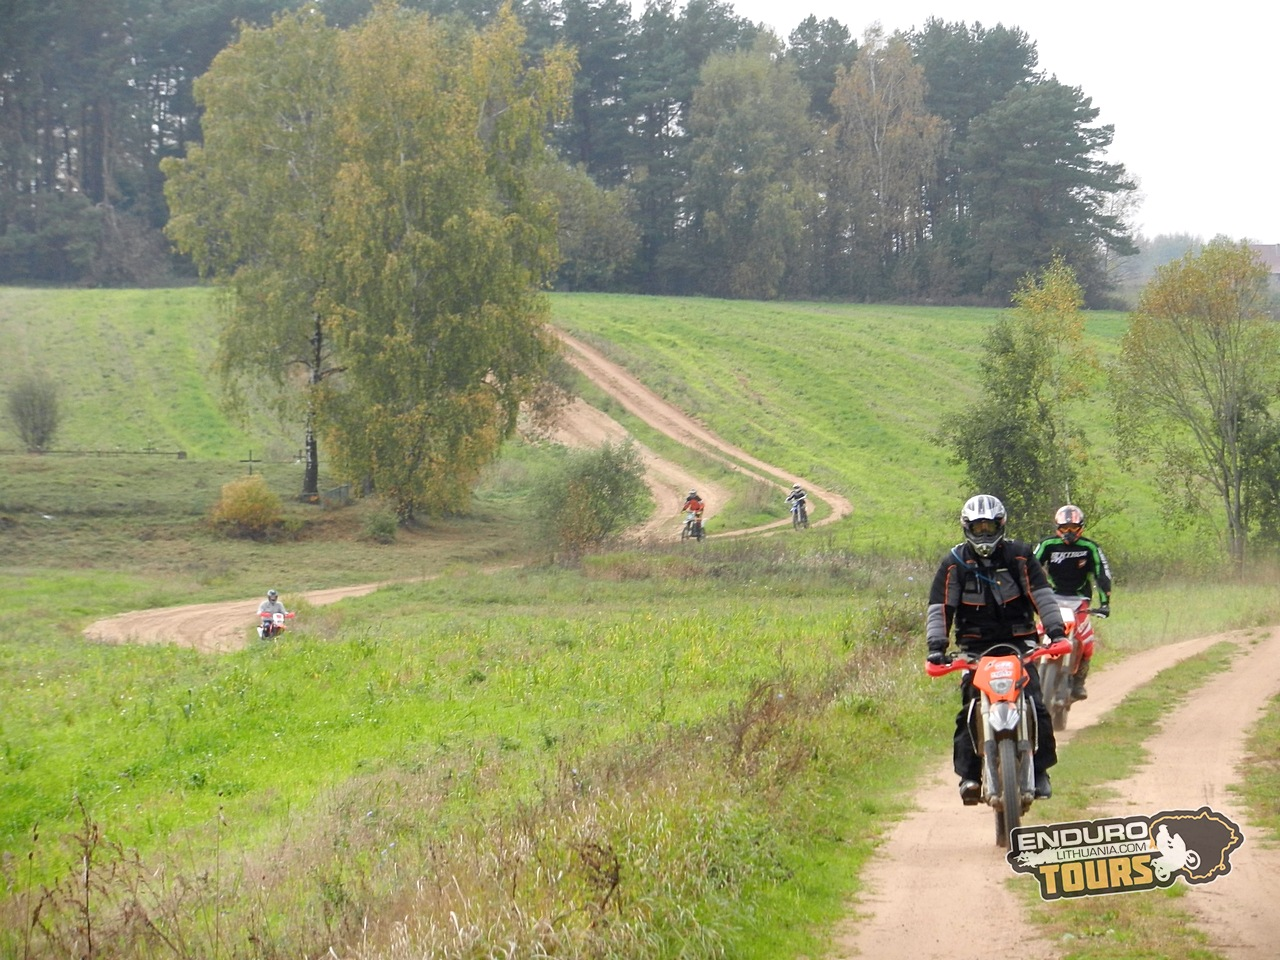 Enduro_Lithuania_Tours_1028